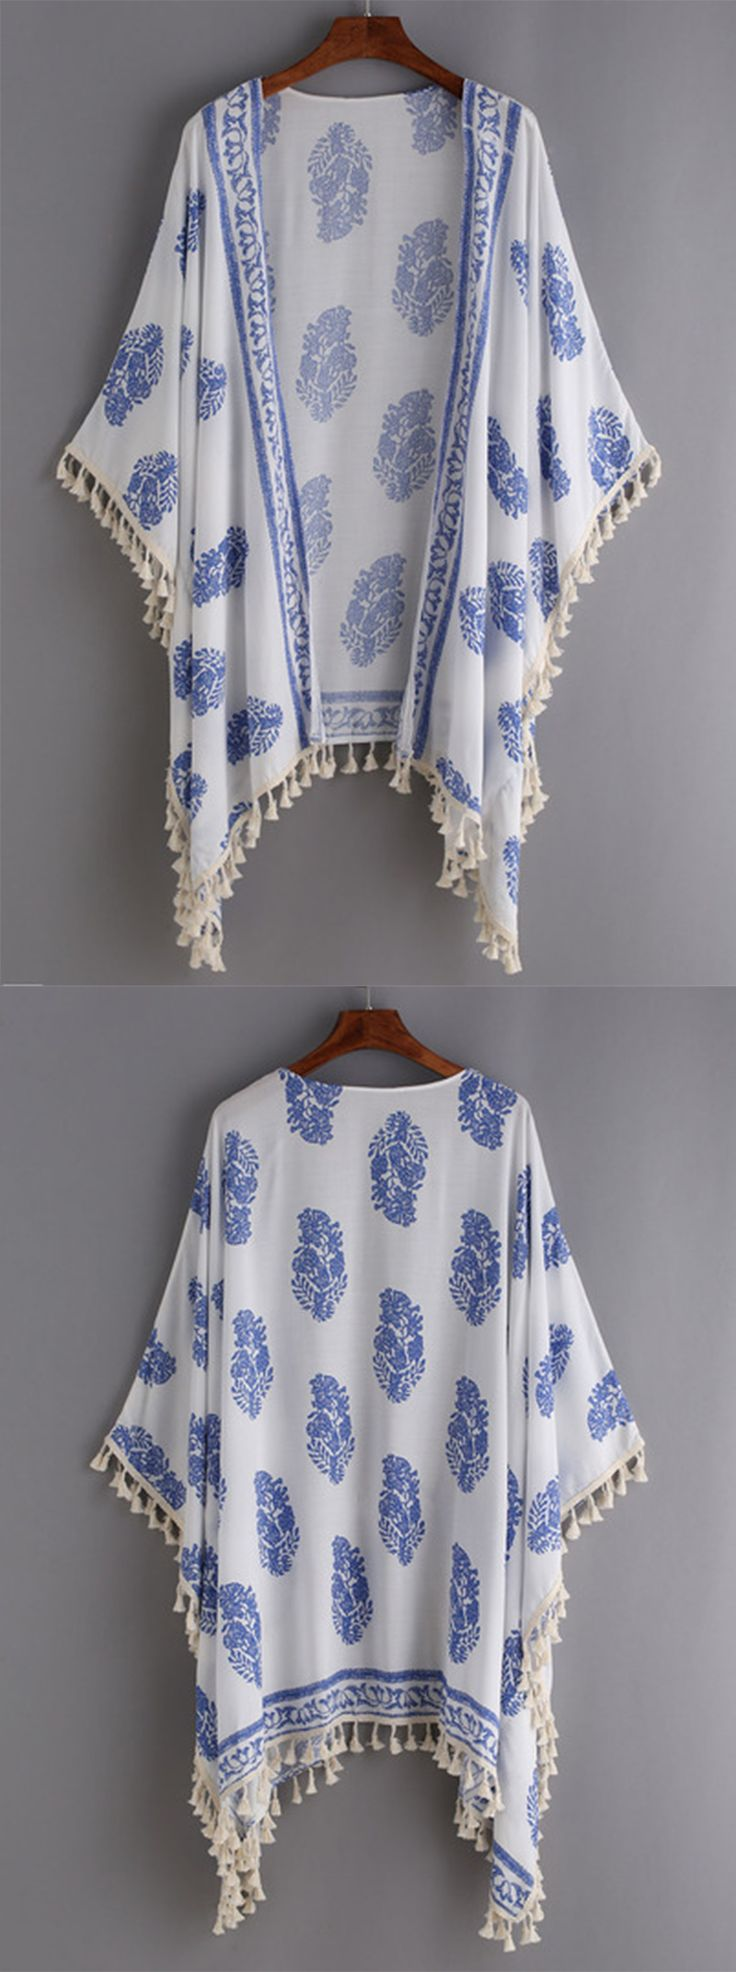 Beach Style - Tassel Trimmed Printed Kimono - romwe.com                                                                                                                                                                                 More